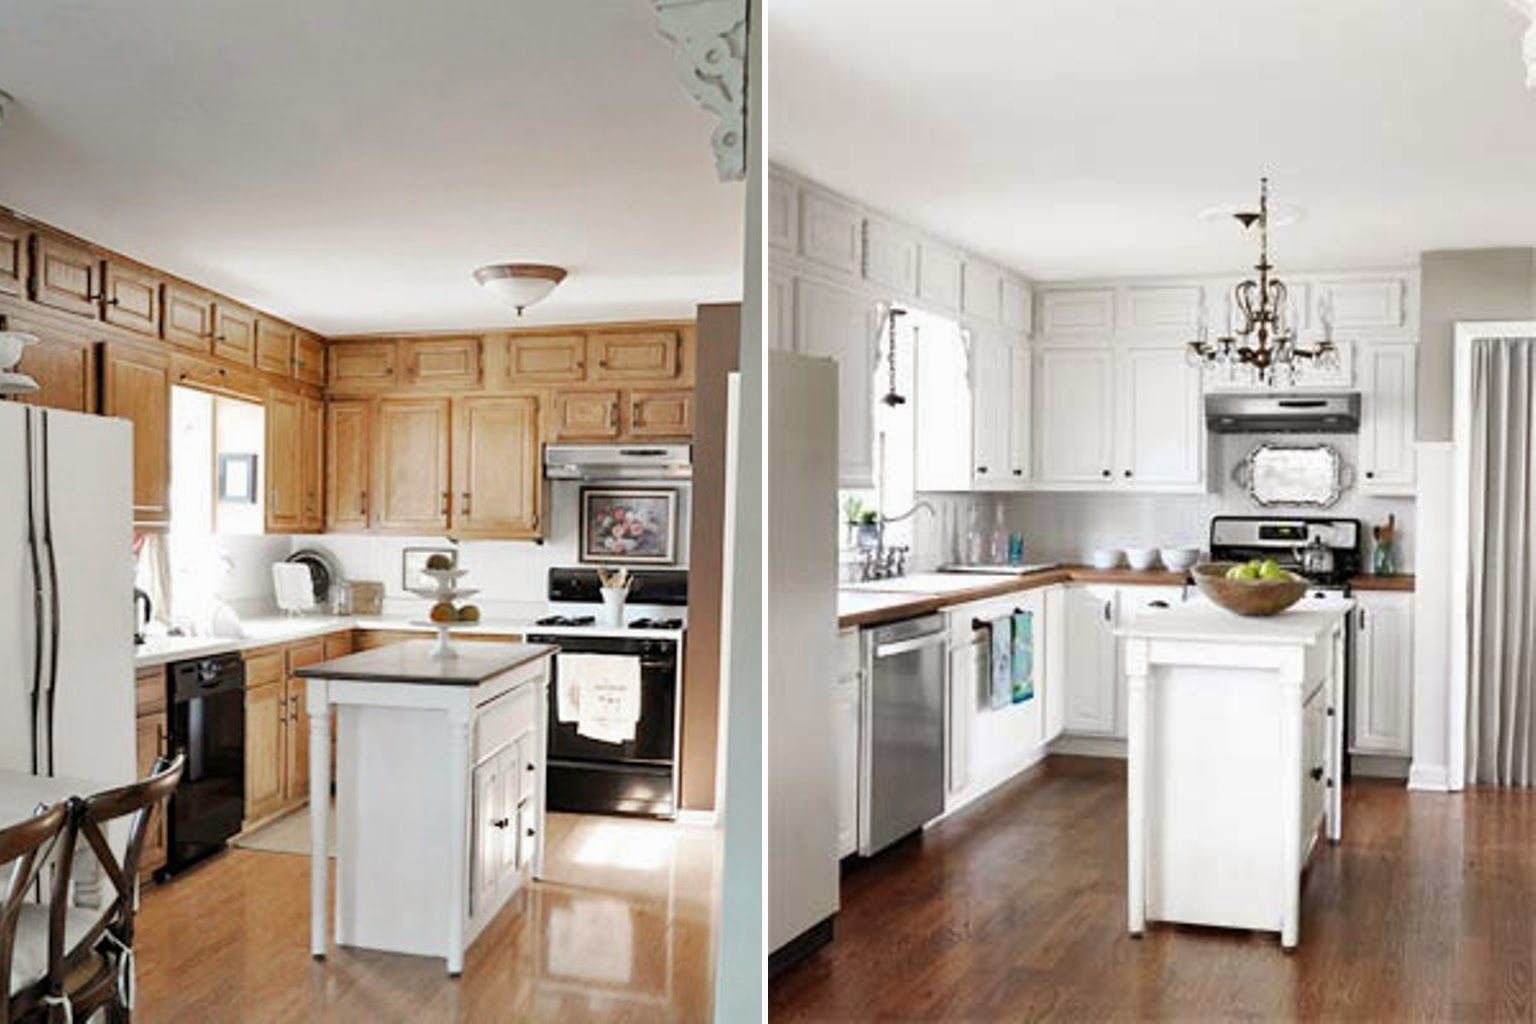 Paint Kitchen Cabinets White Before And After Home Furniture Design Kitchen Cabinets Before And After Kitchen Renovation Painting Kitchen Cabinets White